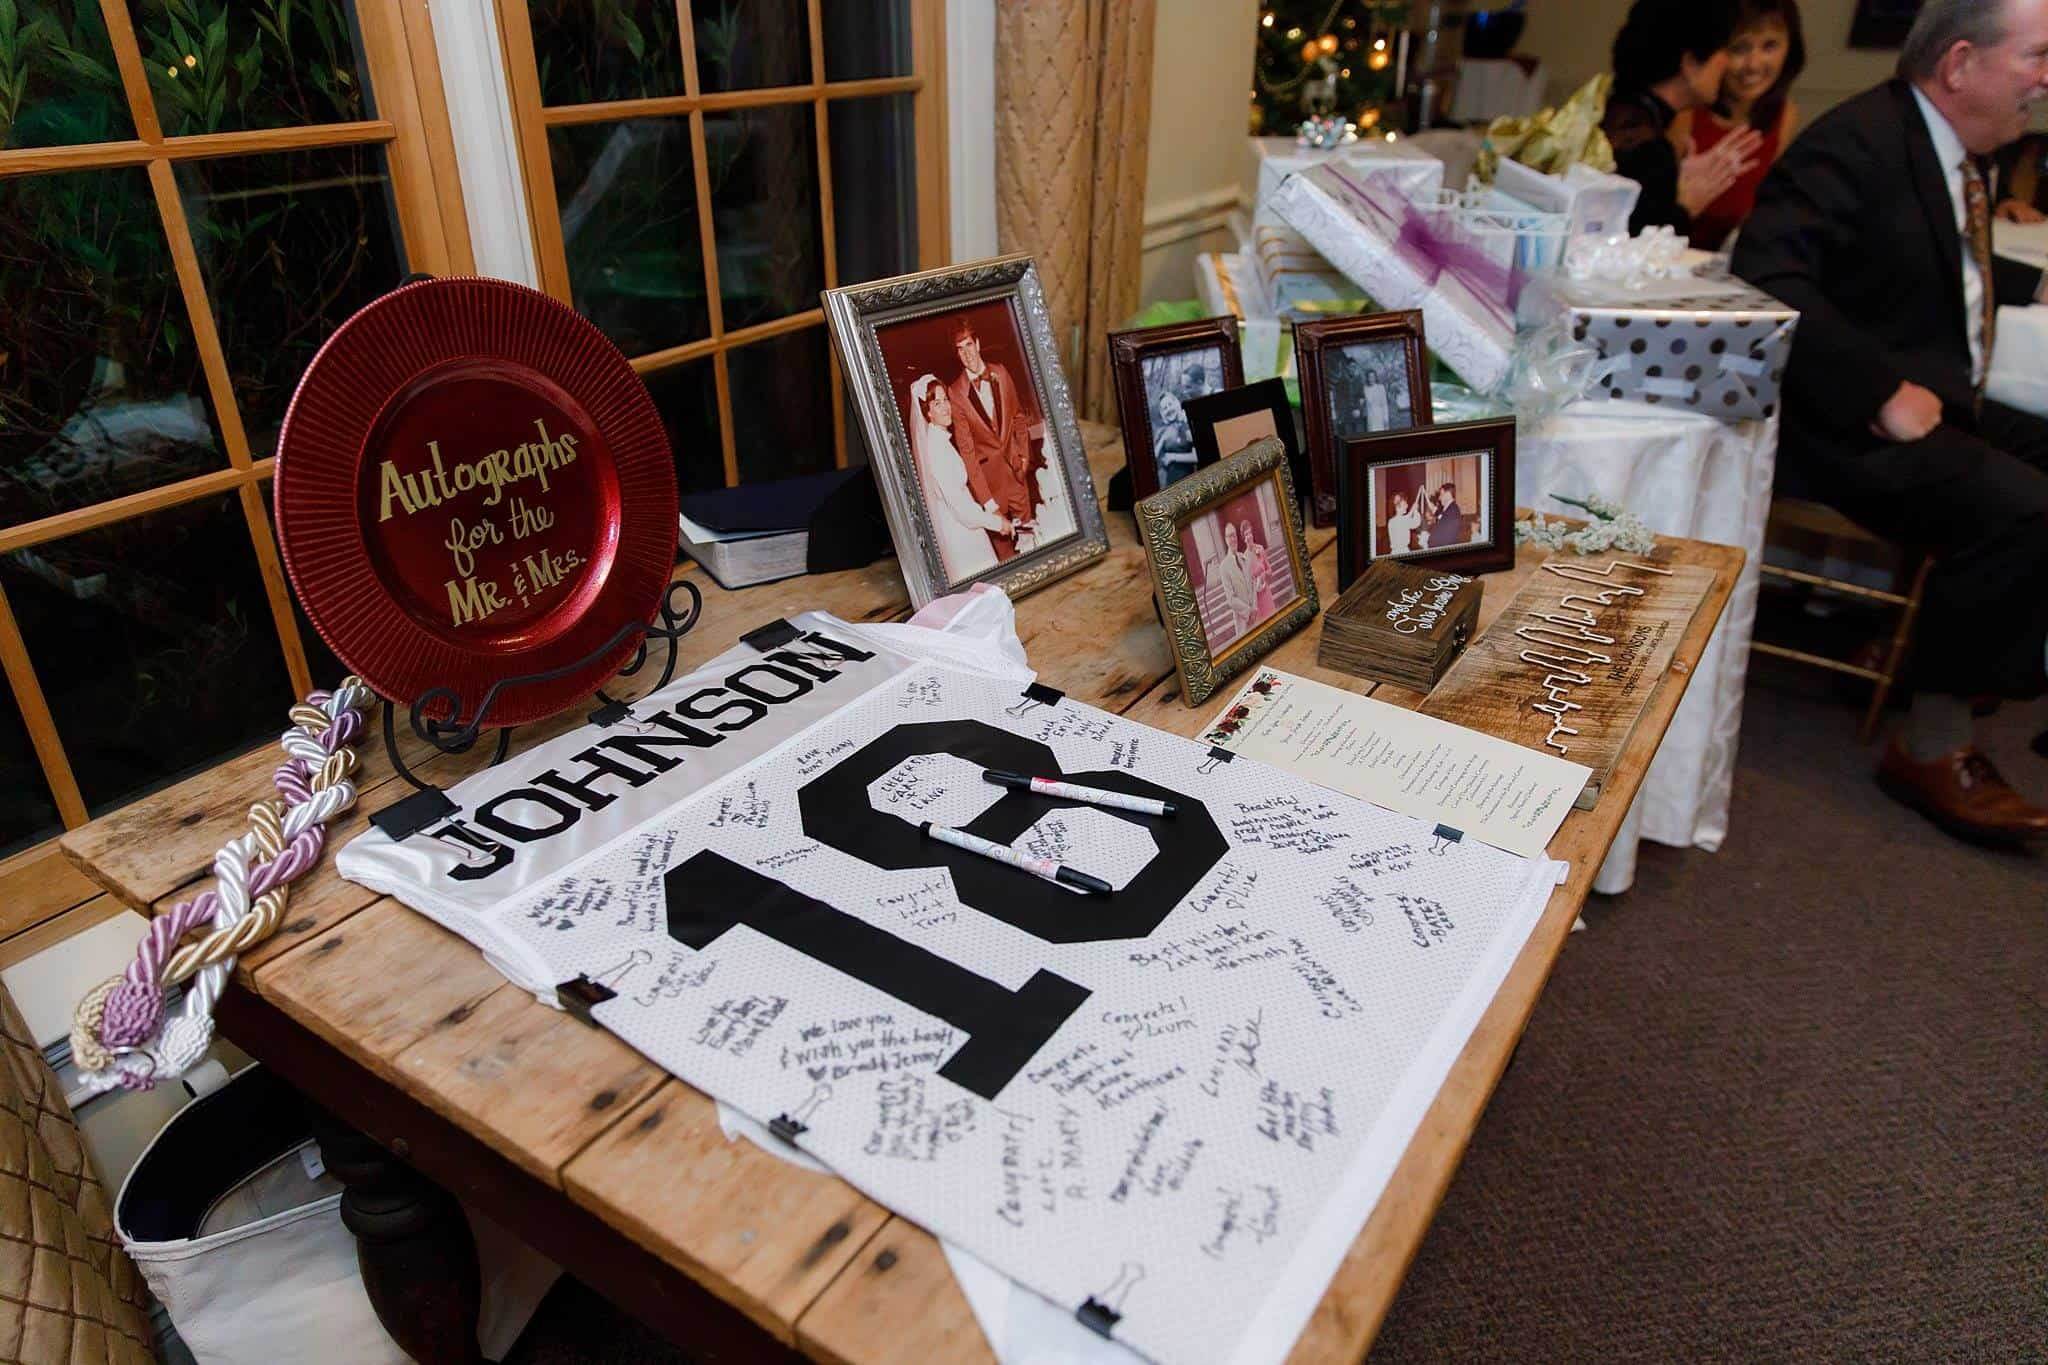 Football Jersey displayed on table for guests to sign next to photos of family